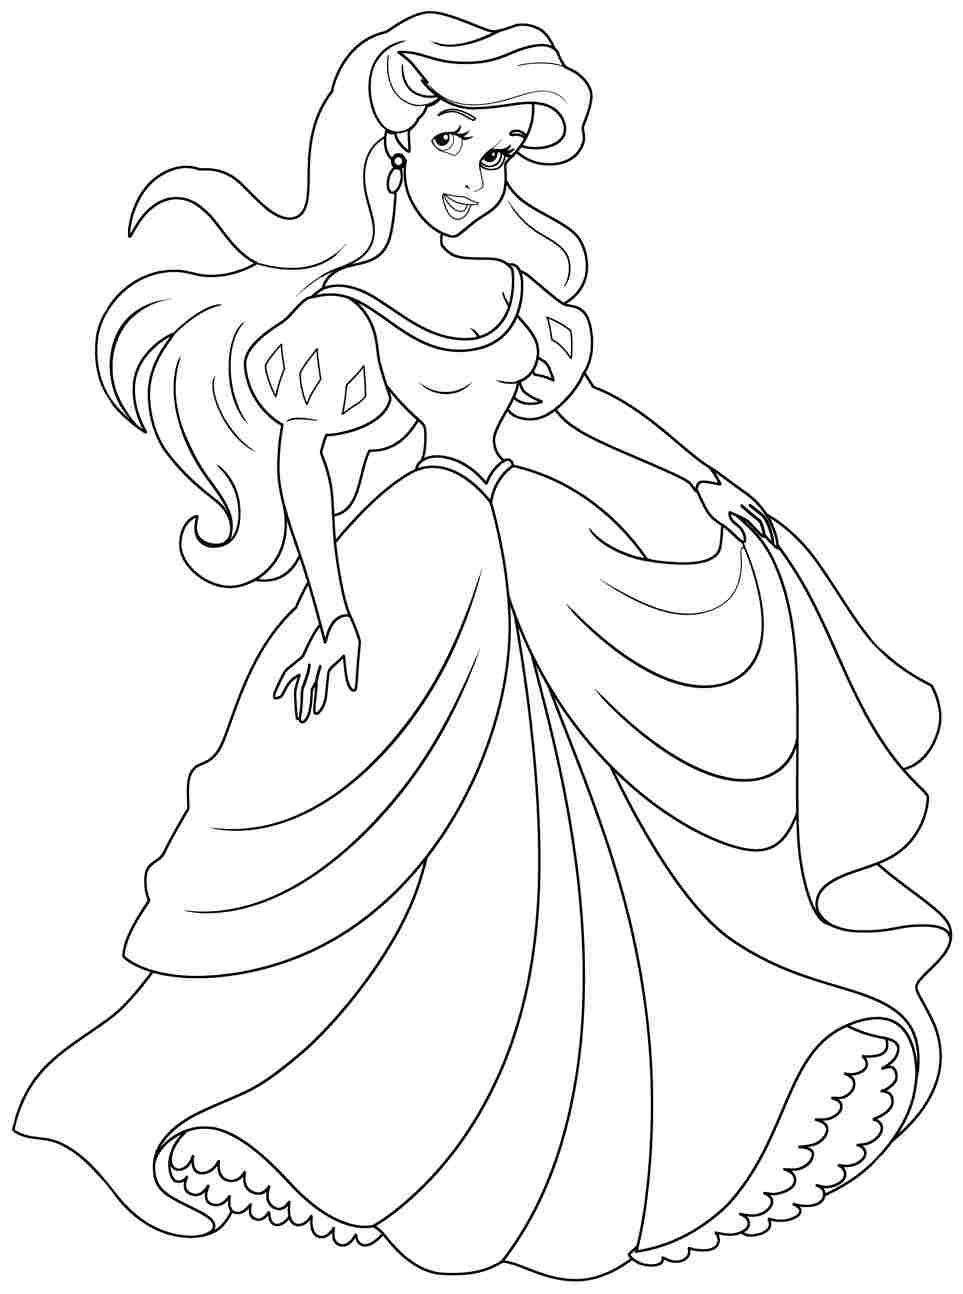 Coloring Pages Disney Princess Ariel